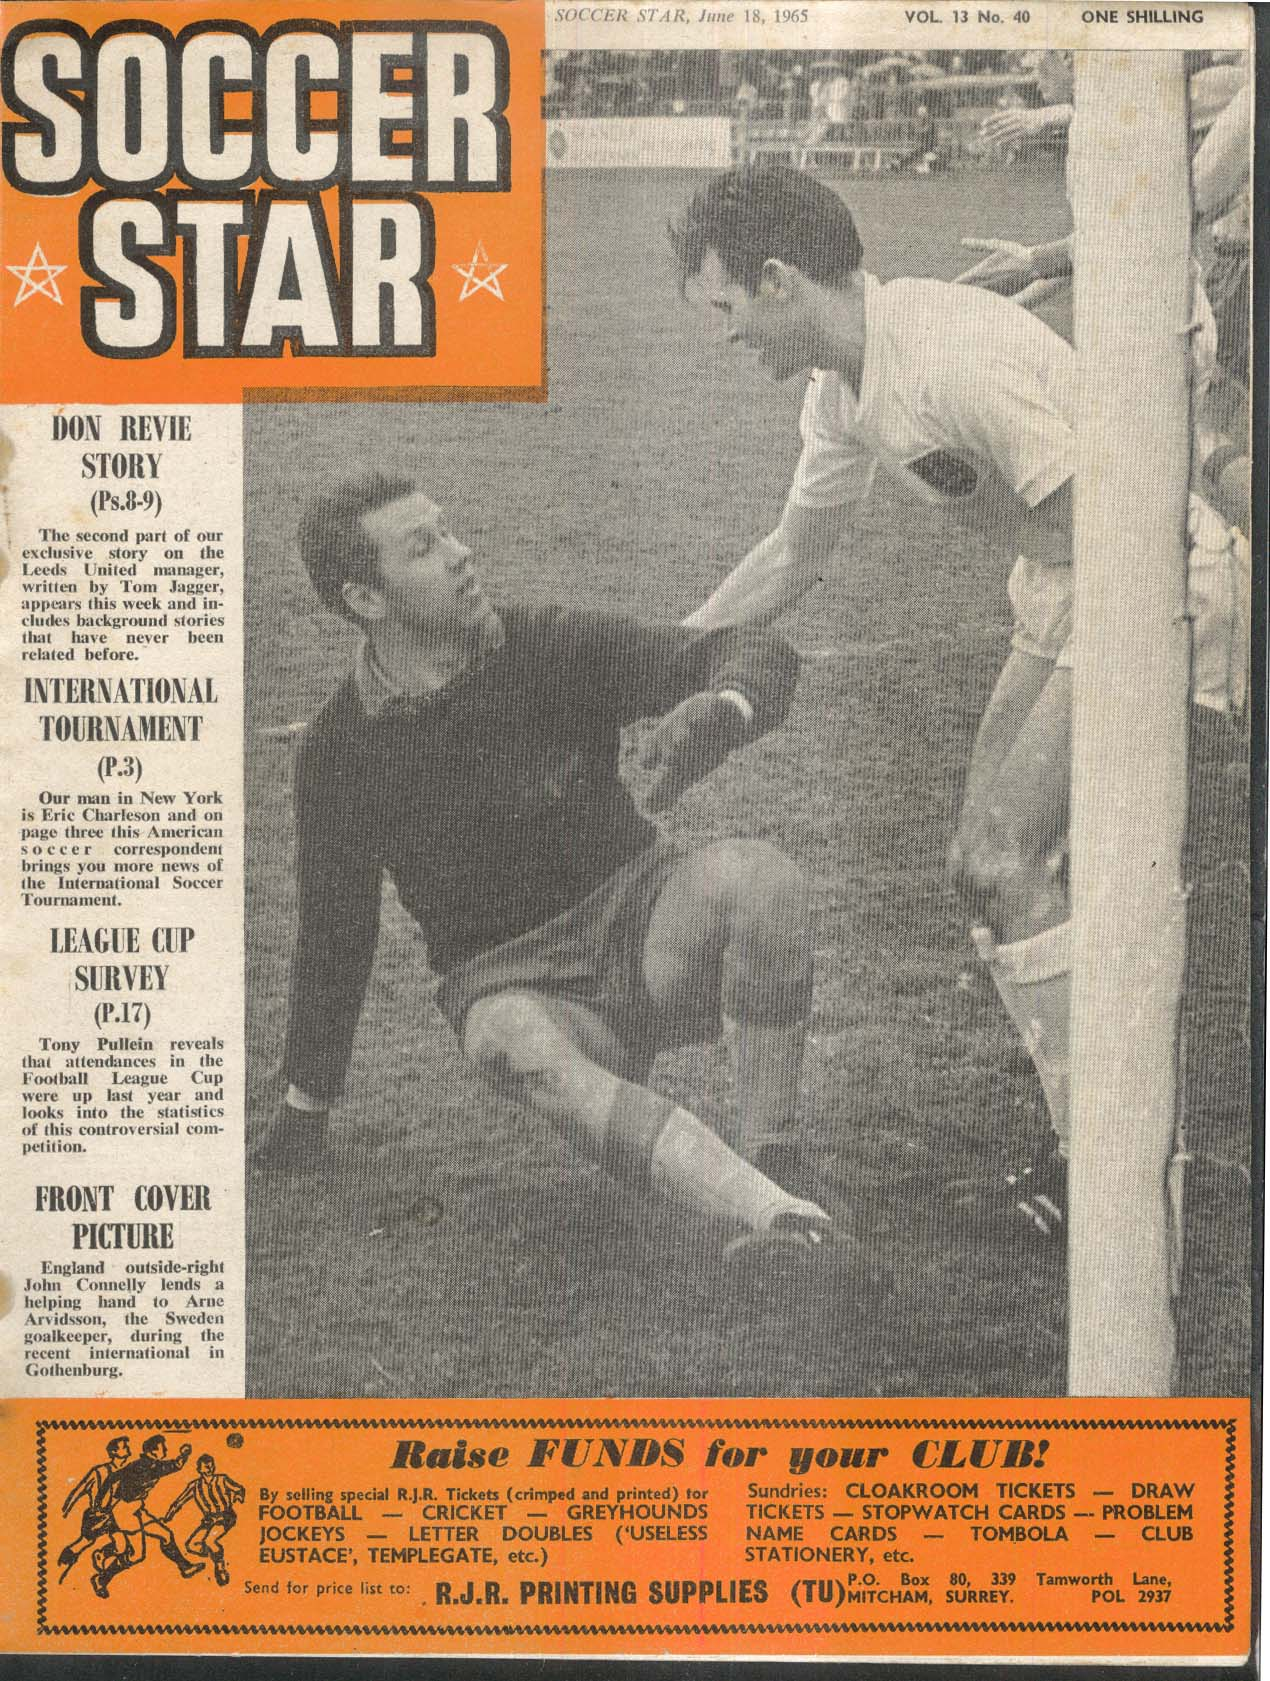 SOCCER STAR Tony Pullein John Connelly Arne Arvidsson 6/18 1965